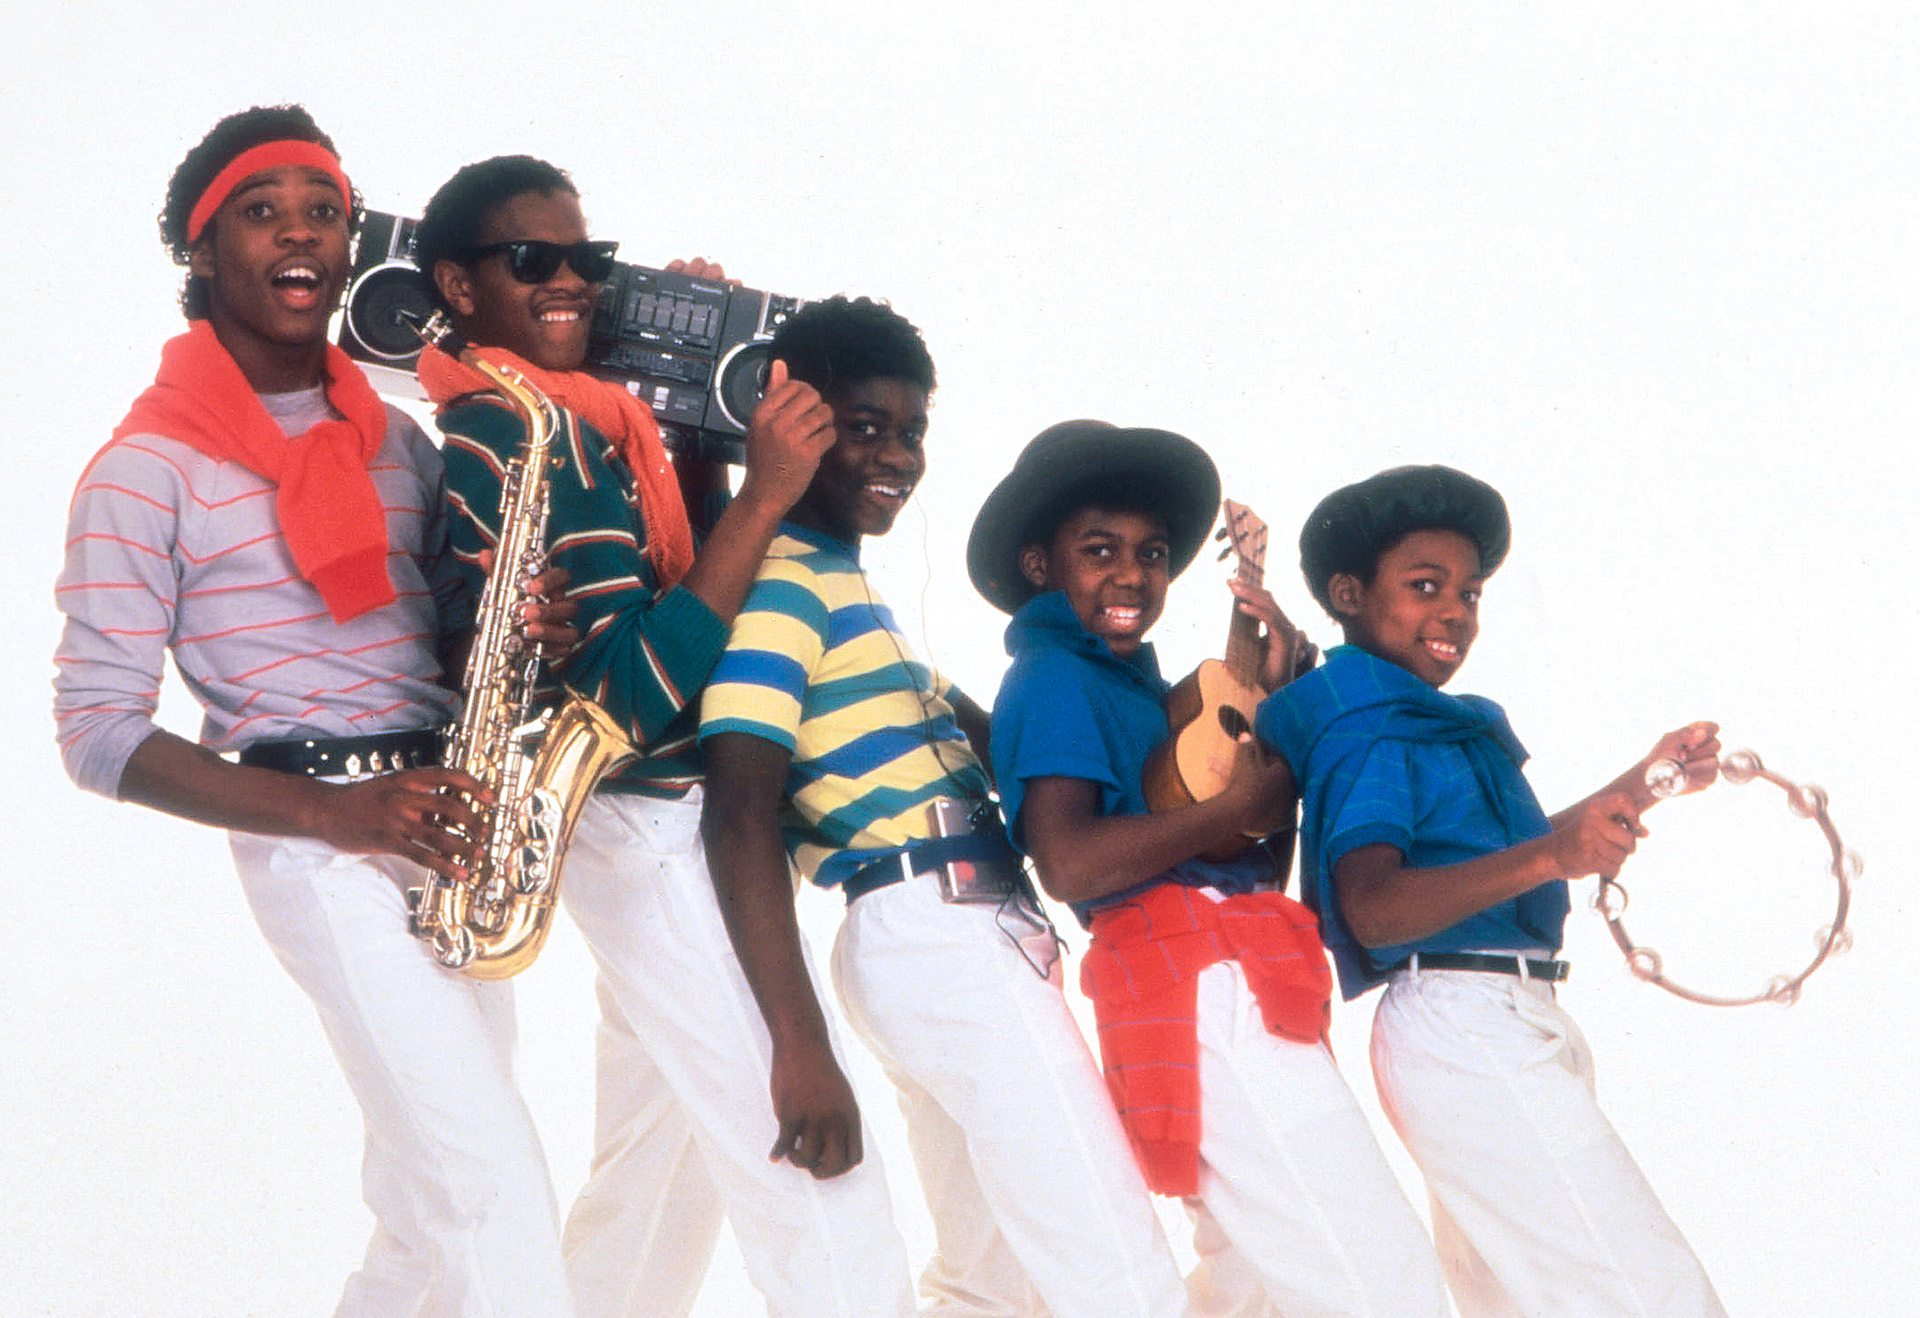 Musical Youth The Best Of 1980s Music In Pictures: Part Two